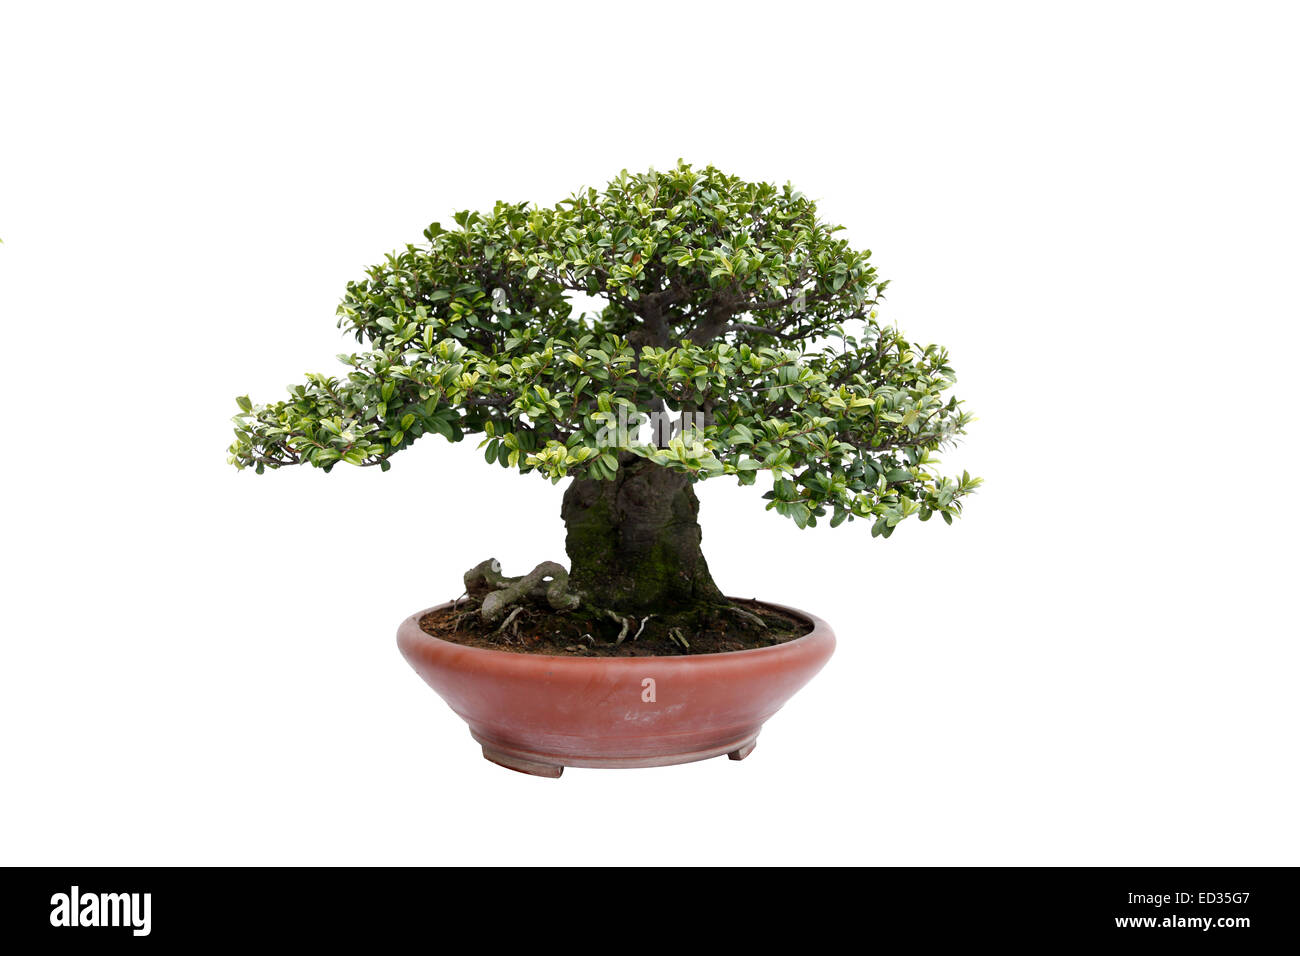 A small bonsai tree in a ceramic pot informal upright style a small bonsai tree in a ceramic pot informal upright styleisolated on a white background mightylinksfo